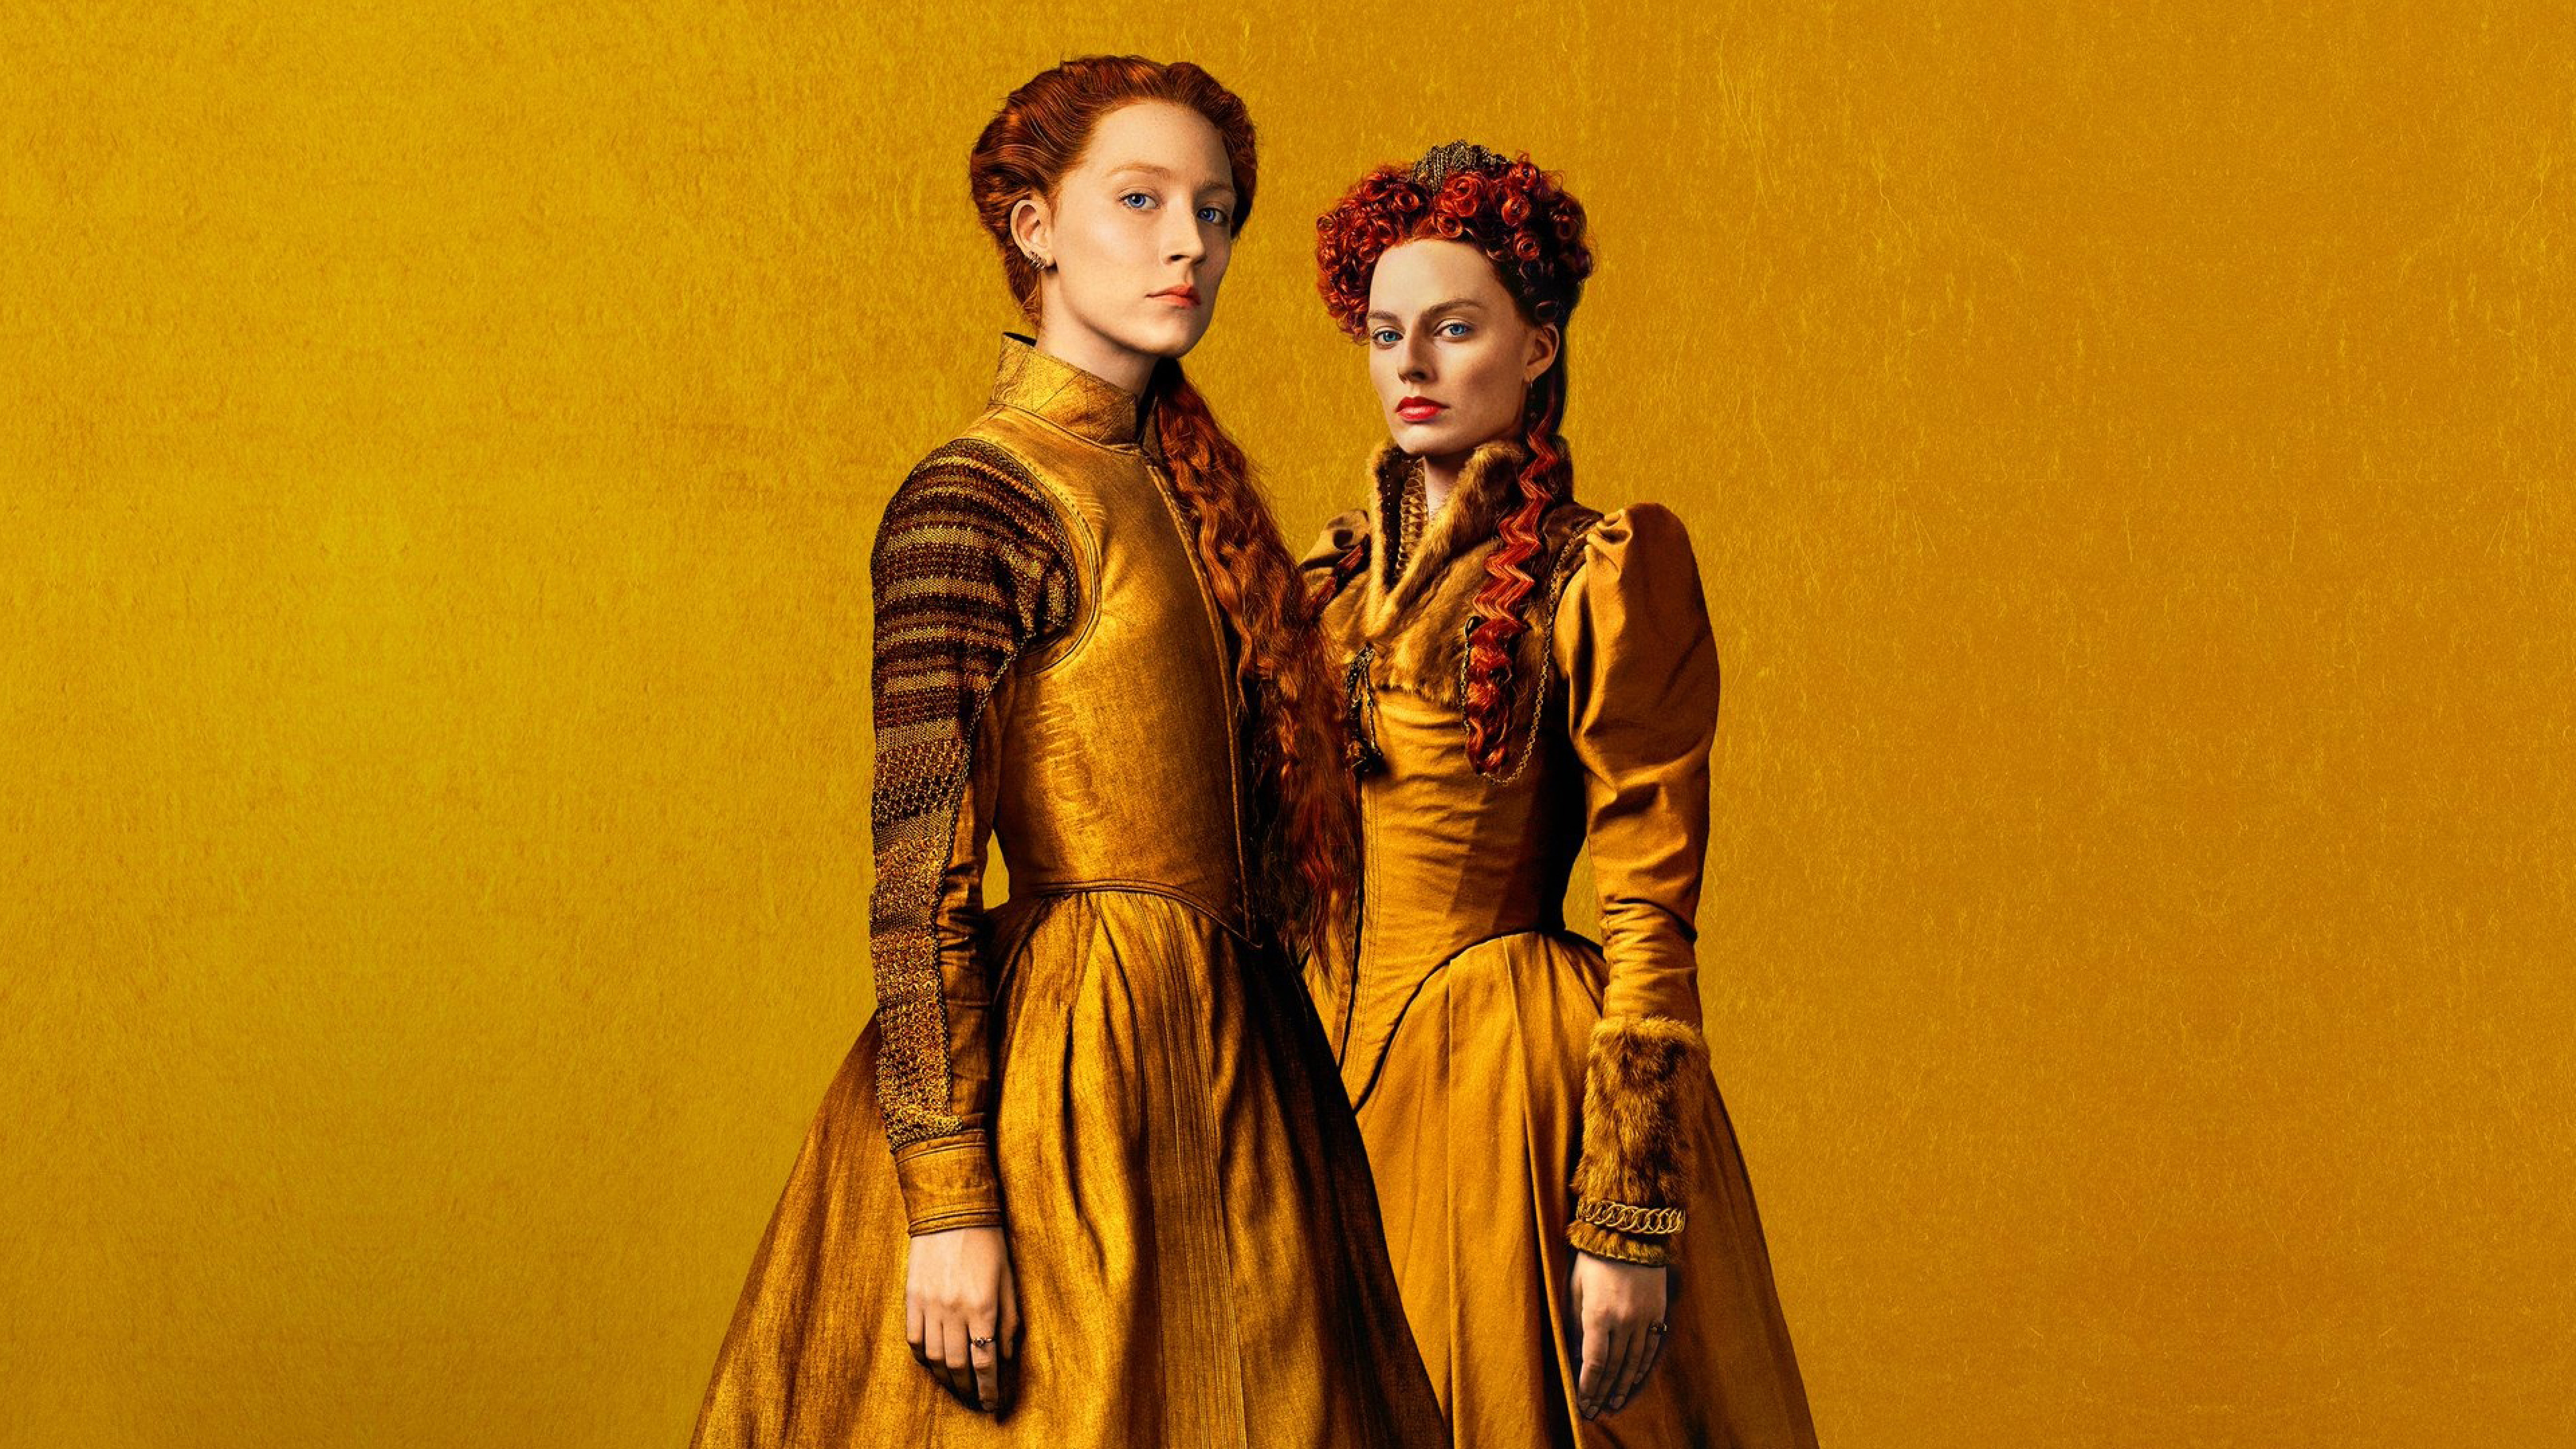 7680x4320 Margot Robbie and Saoirse Ronan in Mary Queen of Scots 7680x4320